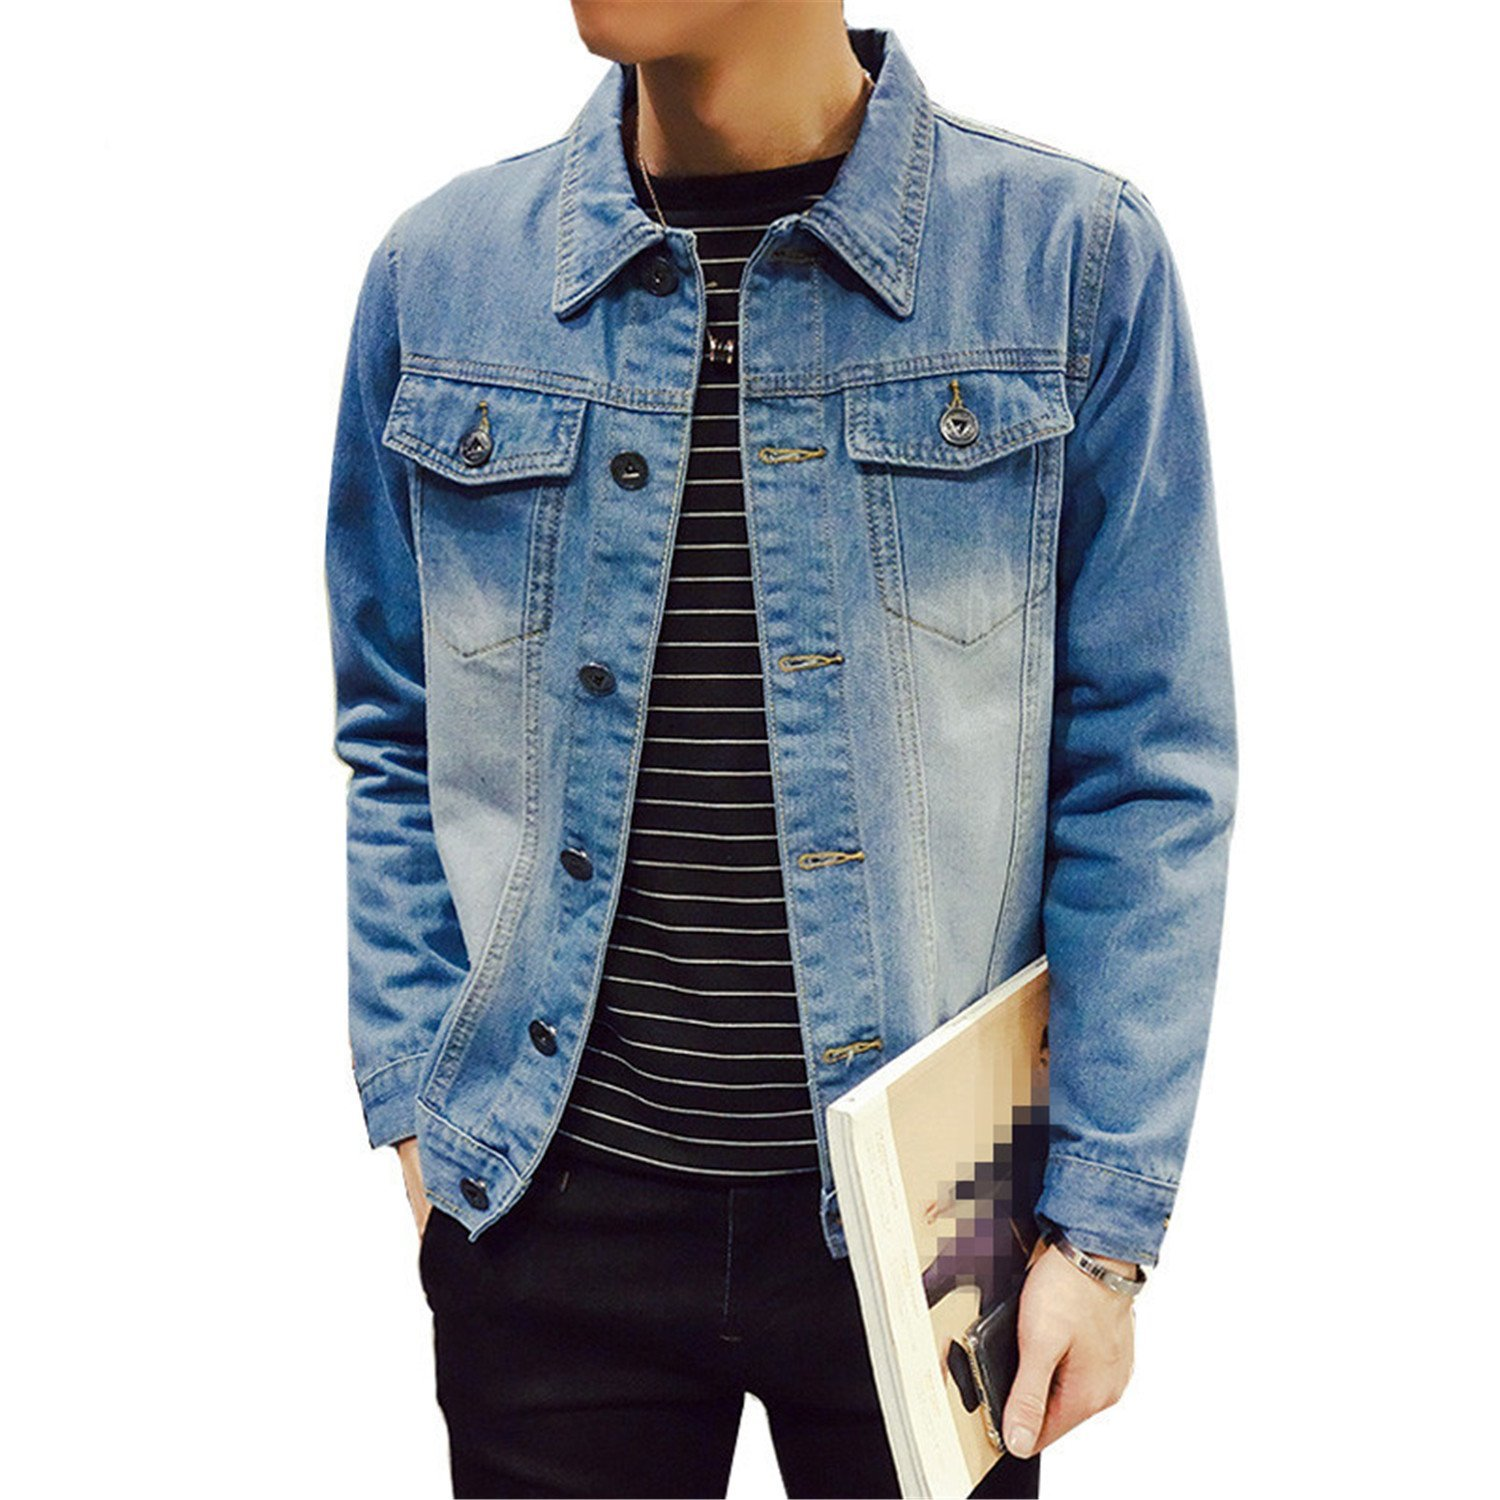 680beec9d37 Get Quotations · Batsomer Solid Casual Slim Mens Denim Jacket Plus Size S-4Xl  5XL Bomber Jacket Men